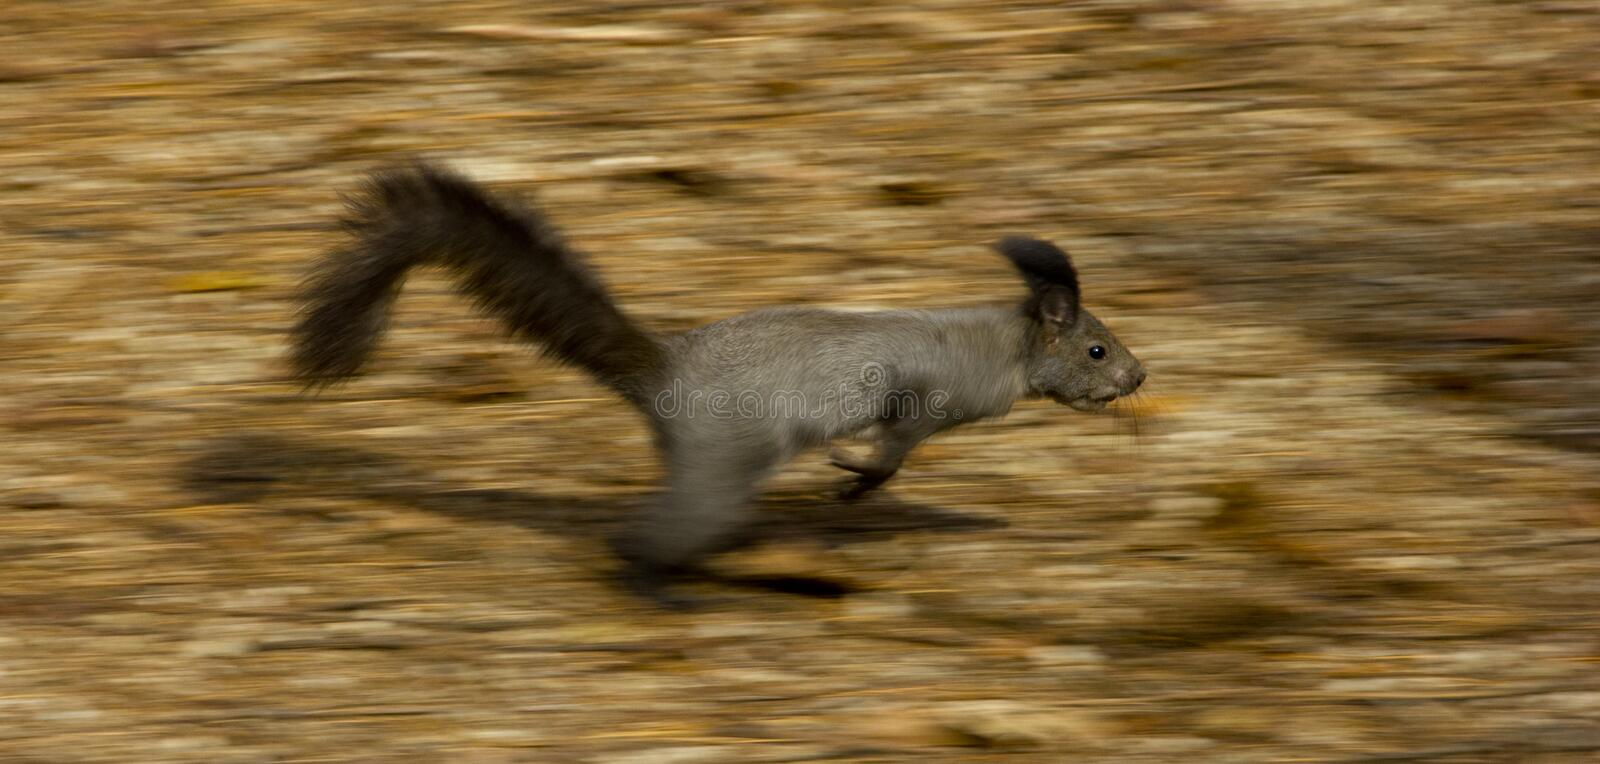 Squirrel running fast royalty free stock photo